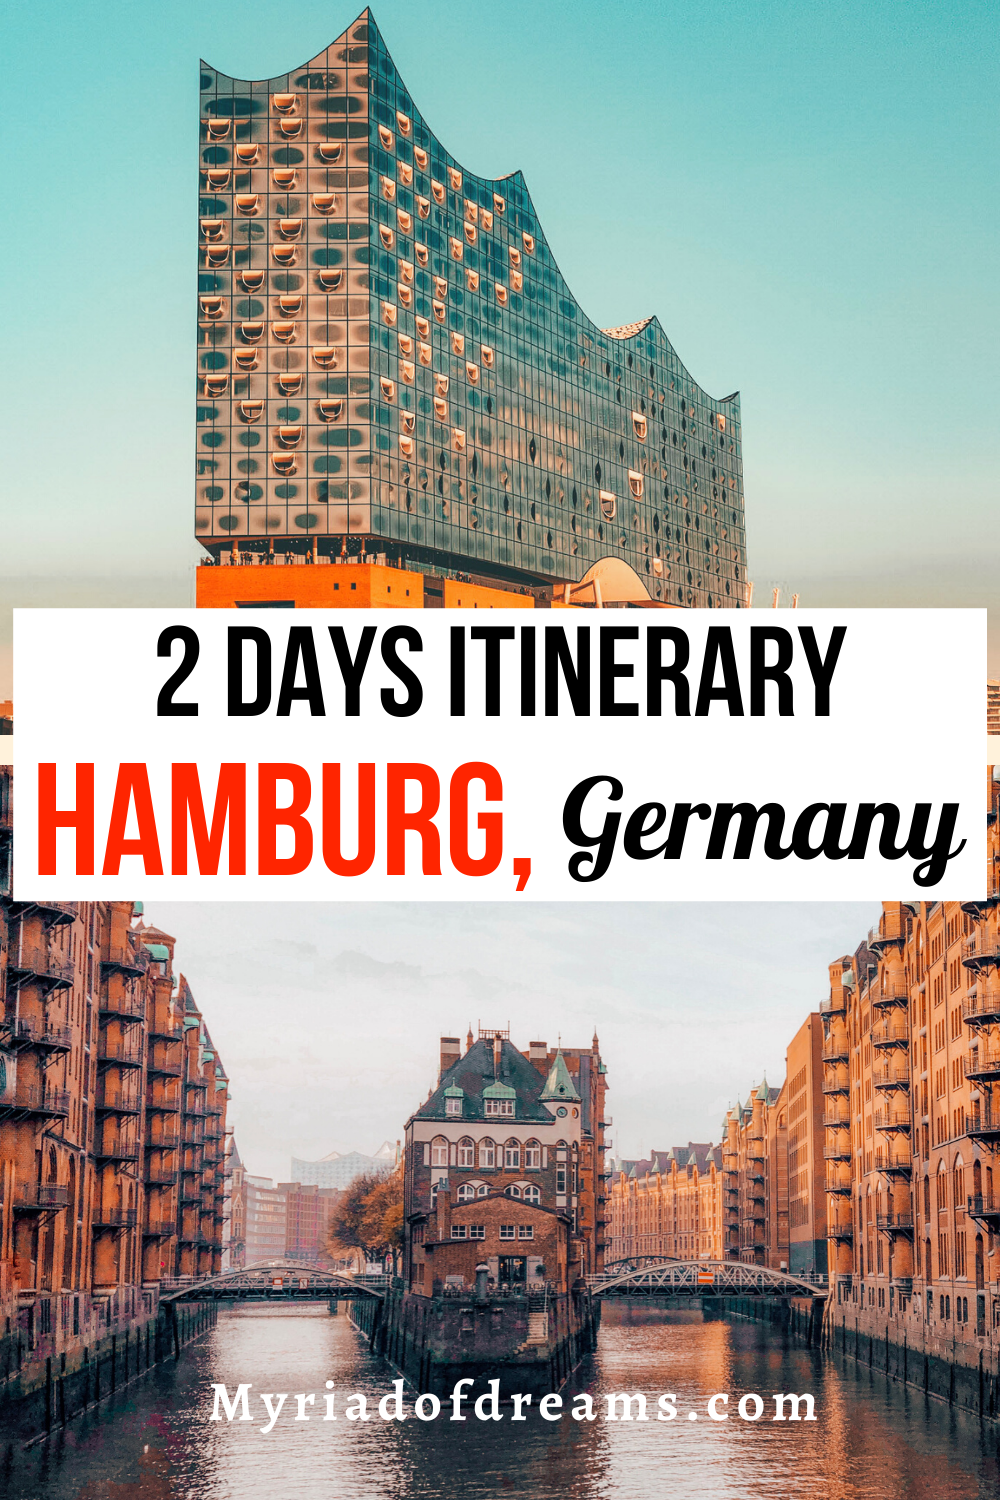 See Hamburg in 2 days with Hamburg Germany travel guide. Explore the best things to do in Hamburg including the Elbphilharmonie, St.Pauli and other historic locations. This Hamburg itinerary also covers the best tours to take to explore the nightlife of Reeperbahn. #germany #germanytravel #europe #europetravel #hamburg